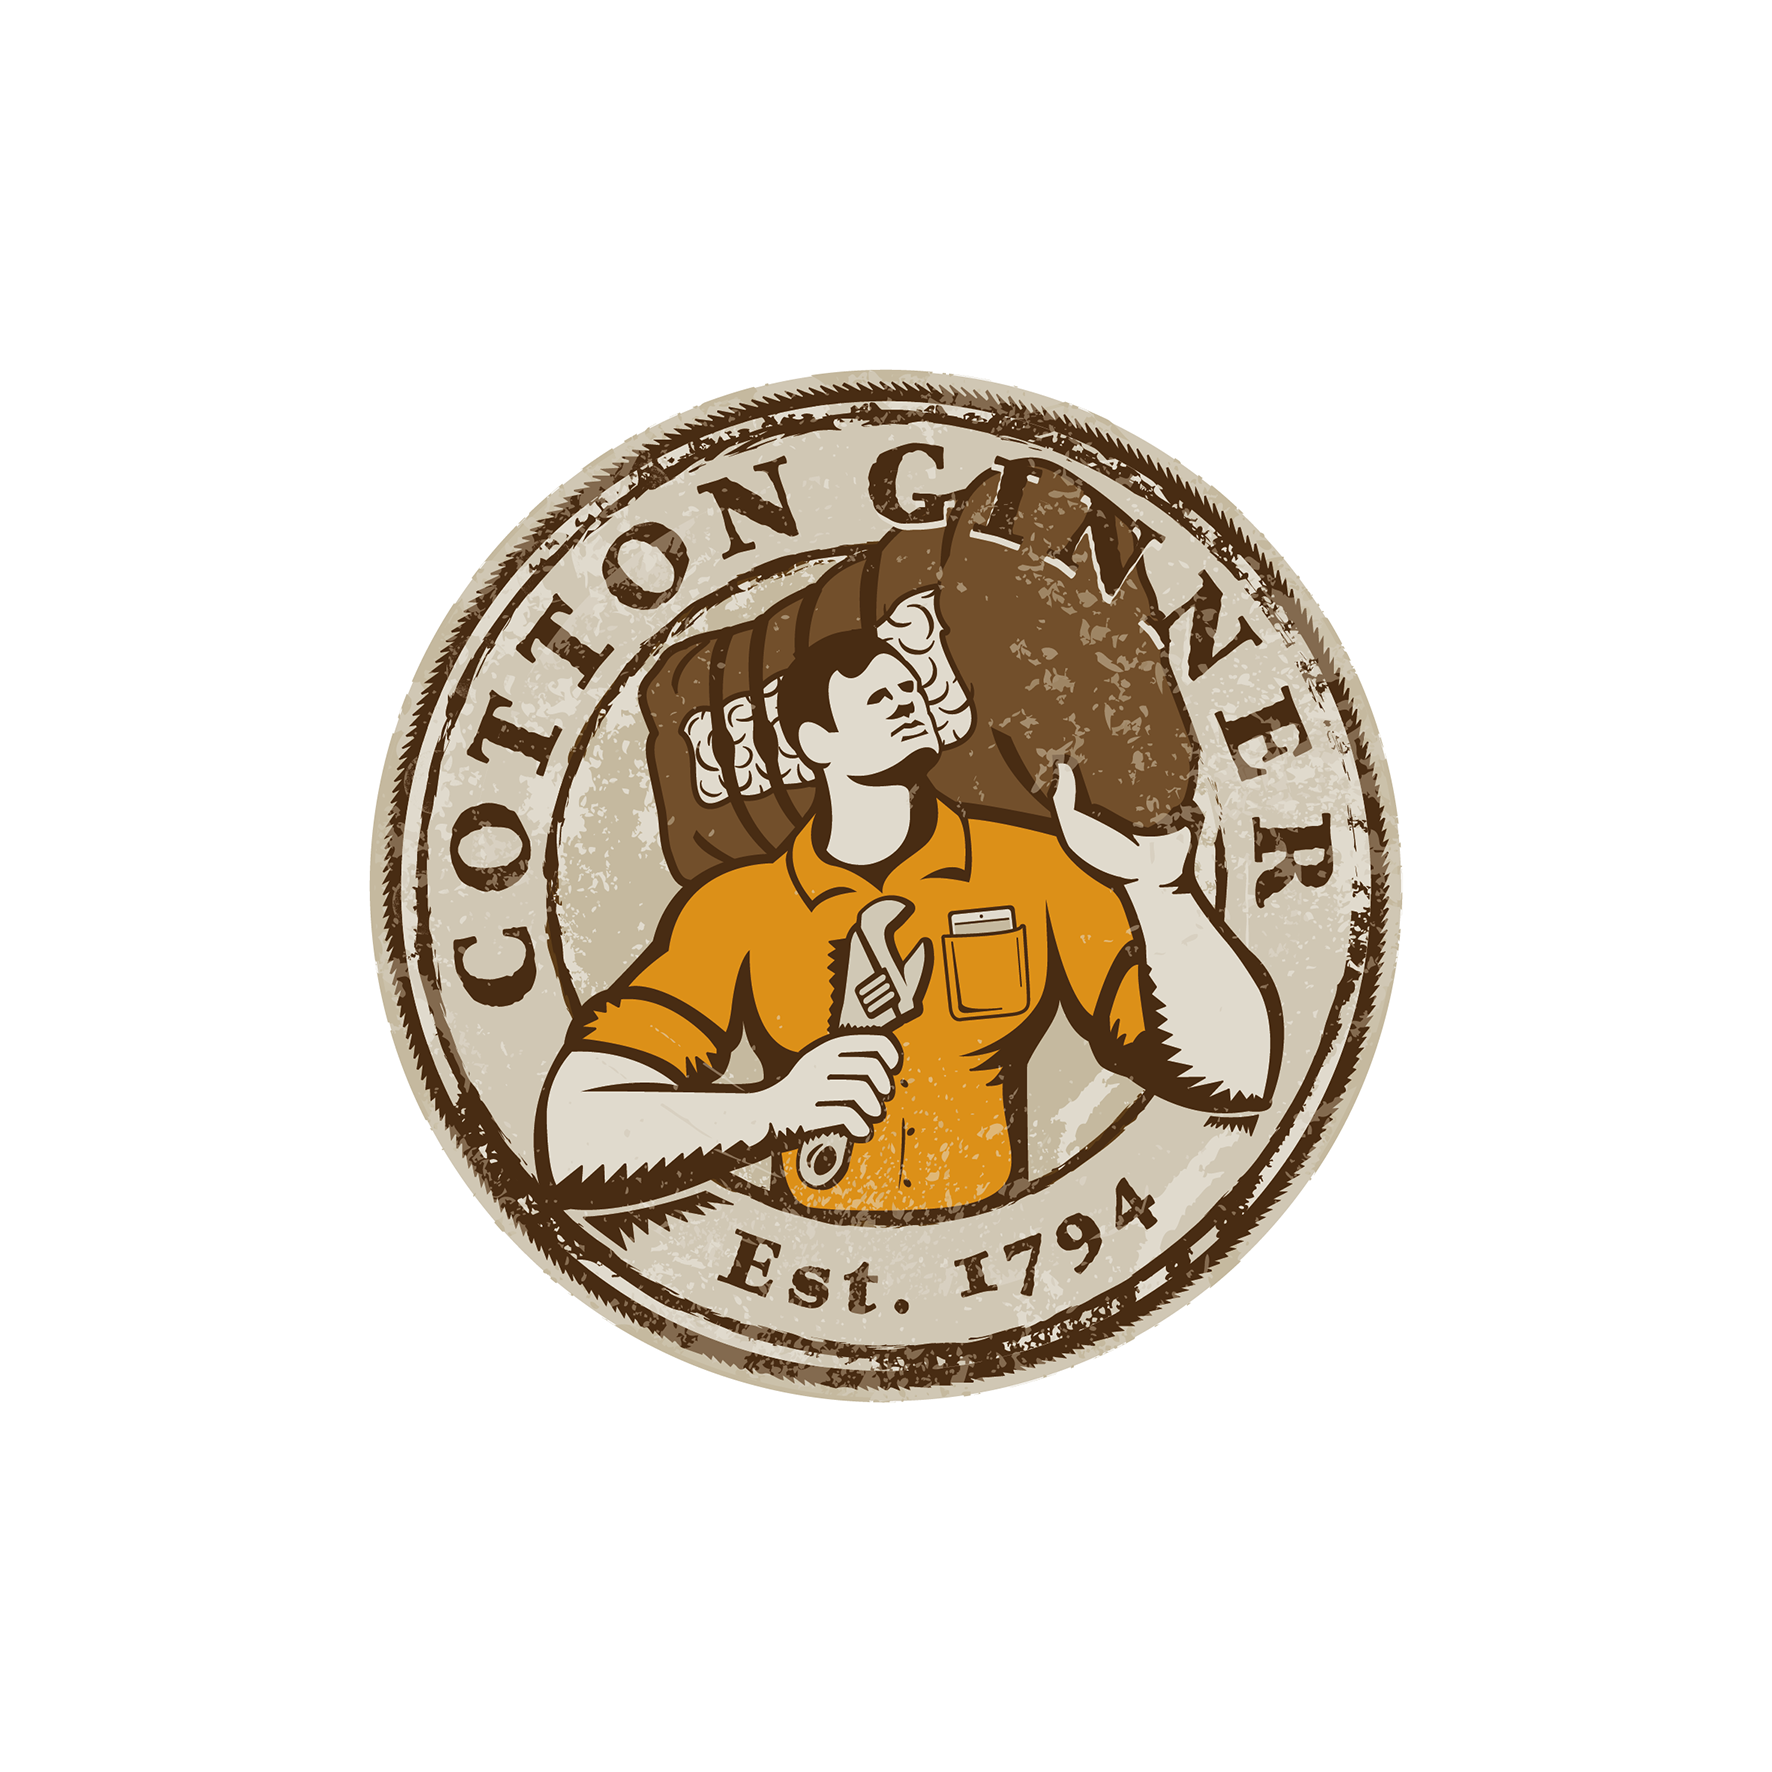 Cotton Ginner logo - opportunity for a unique design challenge